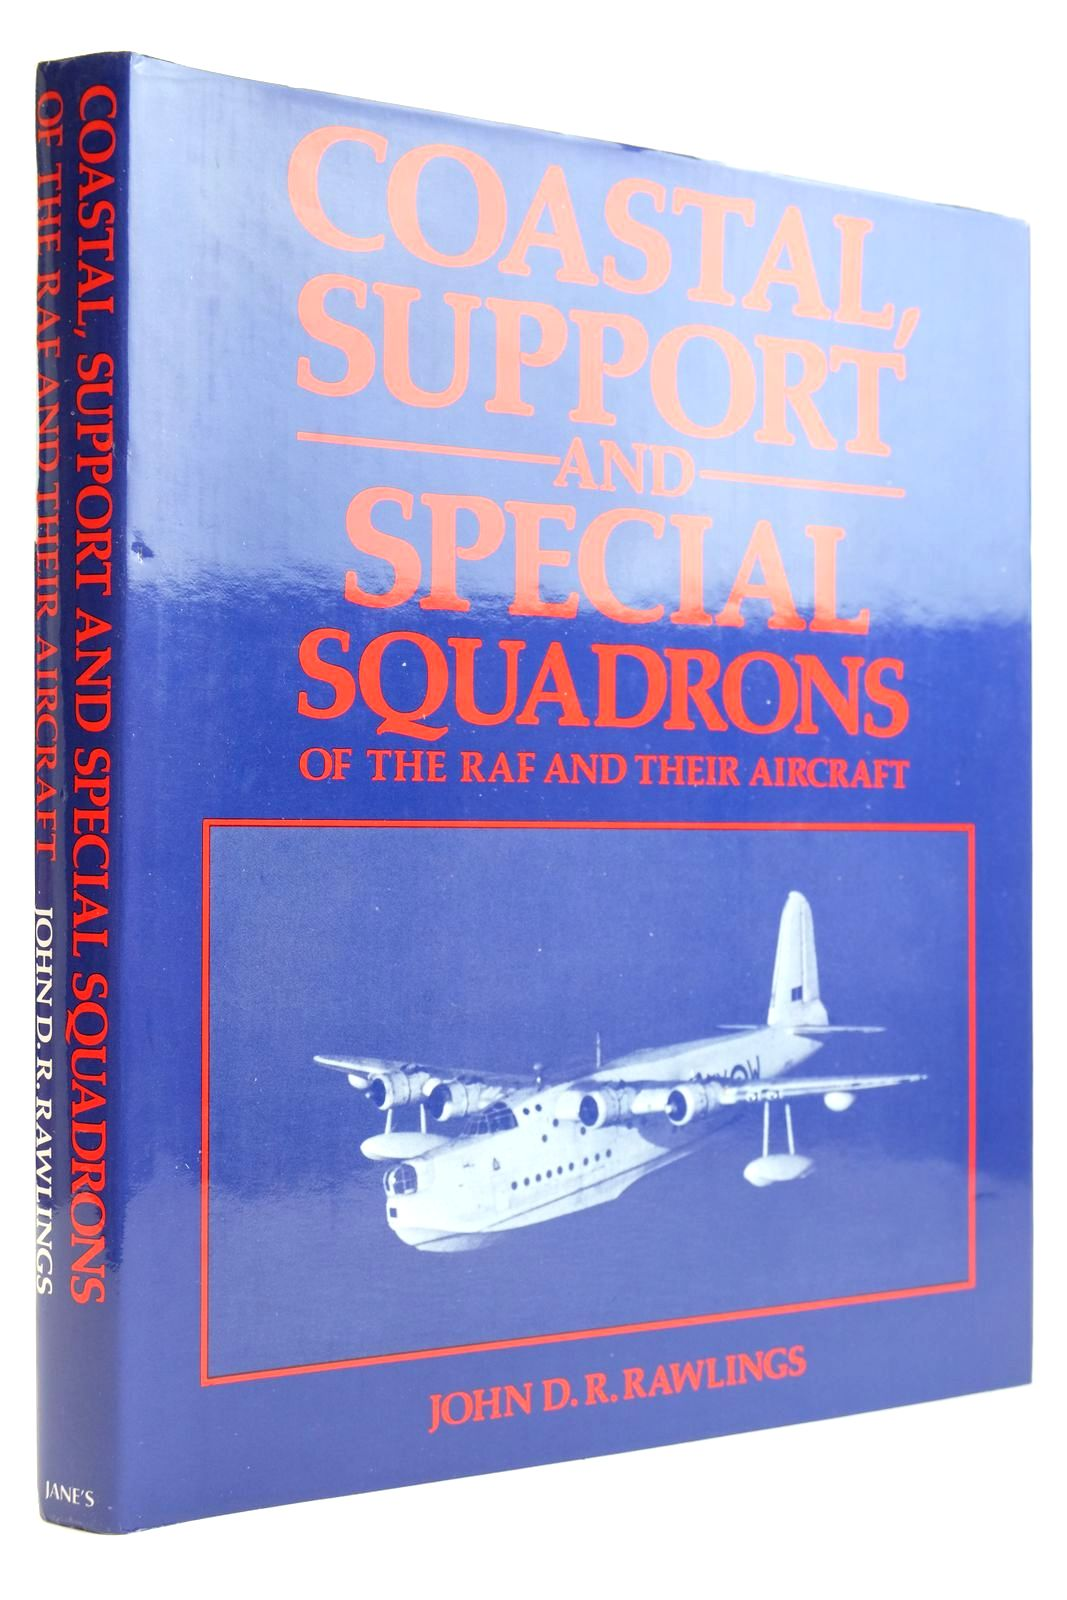 Photo of COASTAL, SUPPORT AND SPECIAL SQUADRONS OF THE RAF AND THEIR AIRCRAFT written by Rawlings, John D.R. published by Jane's Publishing Company (STOCK CODE: 2132154)  for sale by Stella & Rose's Books